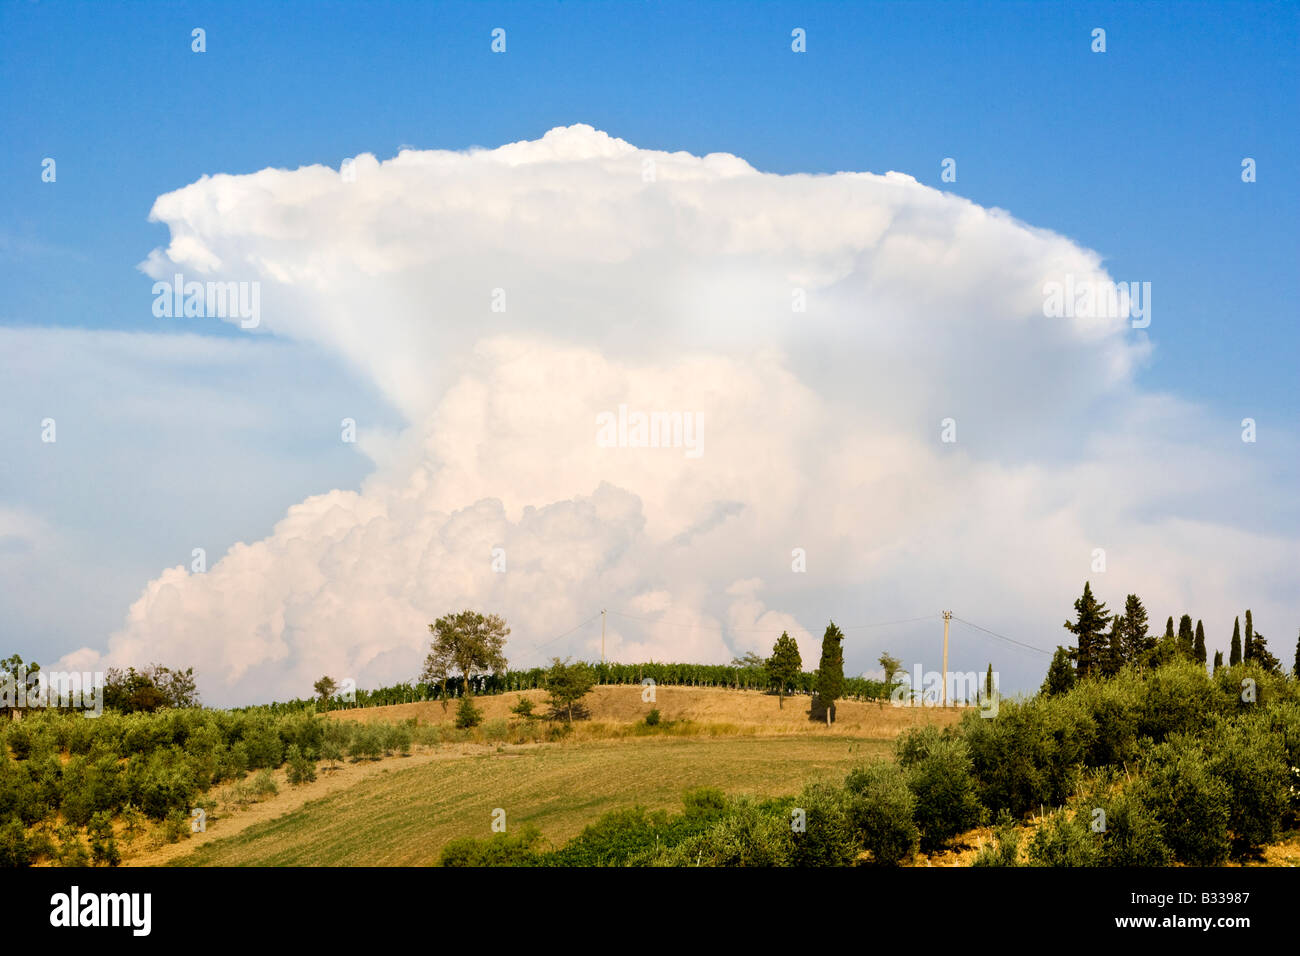 Cumulonimbus thunder cloud with anvil head rising above the Tuscan countryside Tuscany Italy - Stock Image